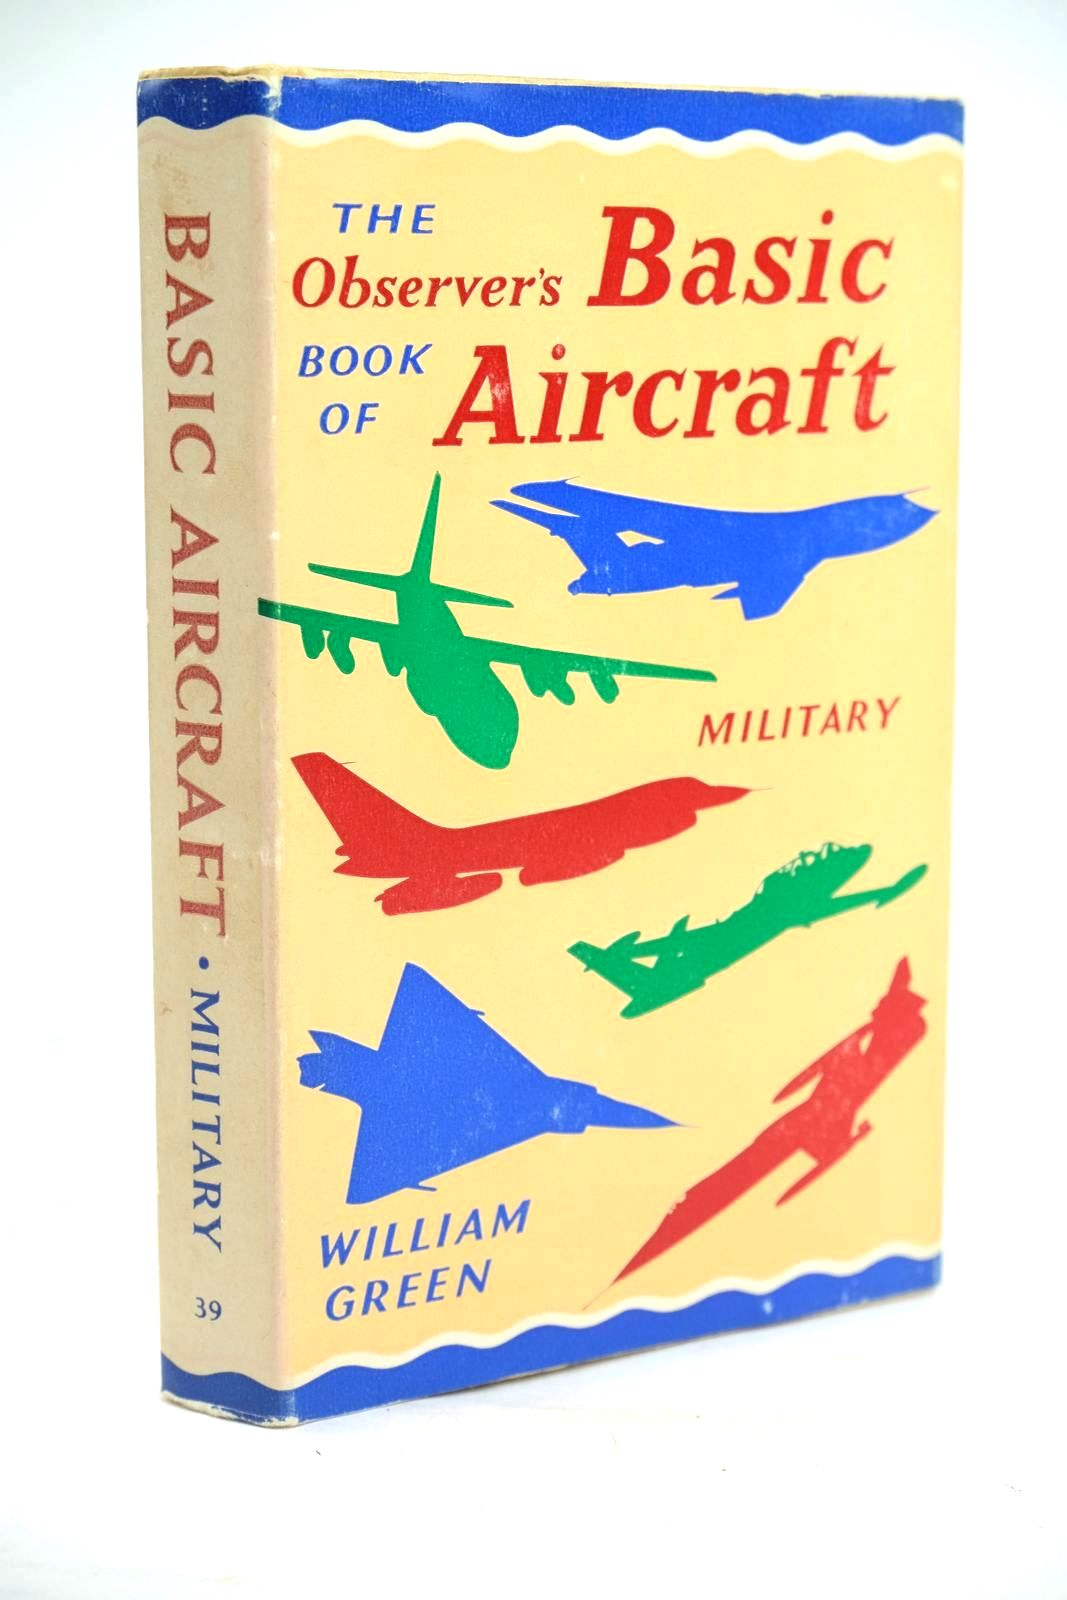 Photo of THE OBSERVER'S BOOK OF BASIC AIRCRAFT: MILITARY written by Green, William illustrated by Punnett, Dennis published by Frederick Warne & Co Ltd. (STOCK CODE: 1319656)  for sale by Stella & Rose's Books